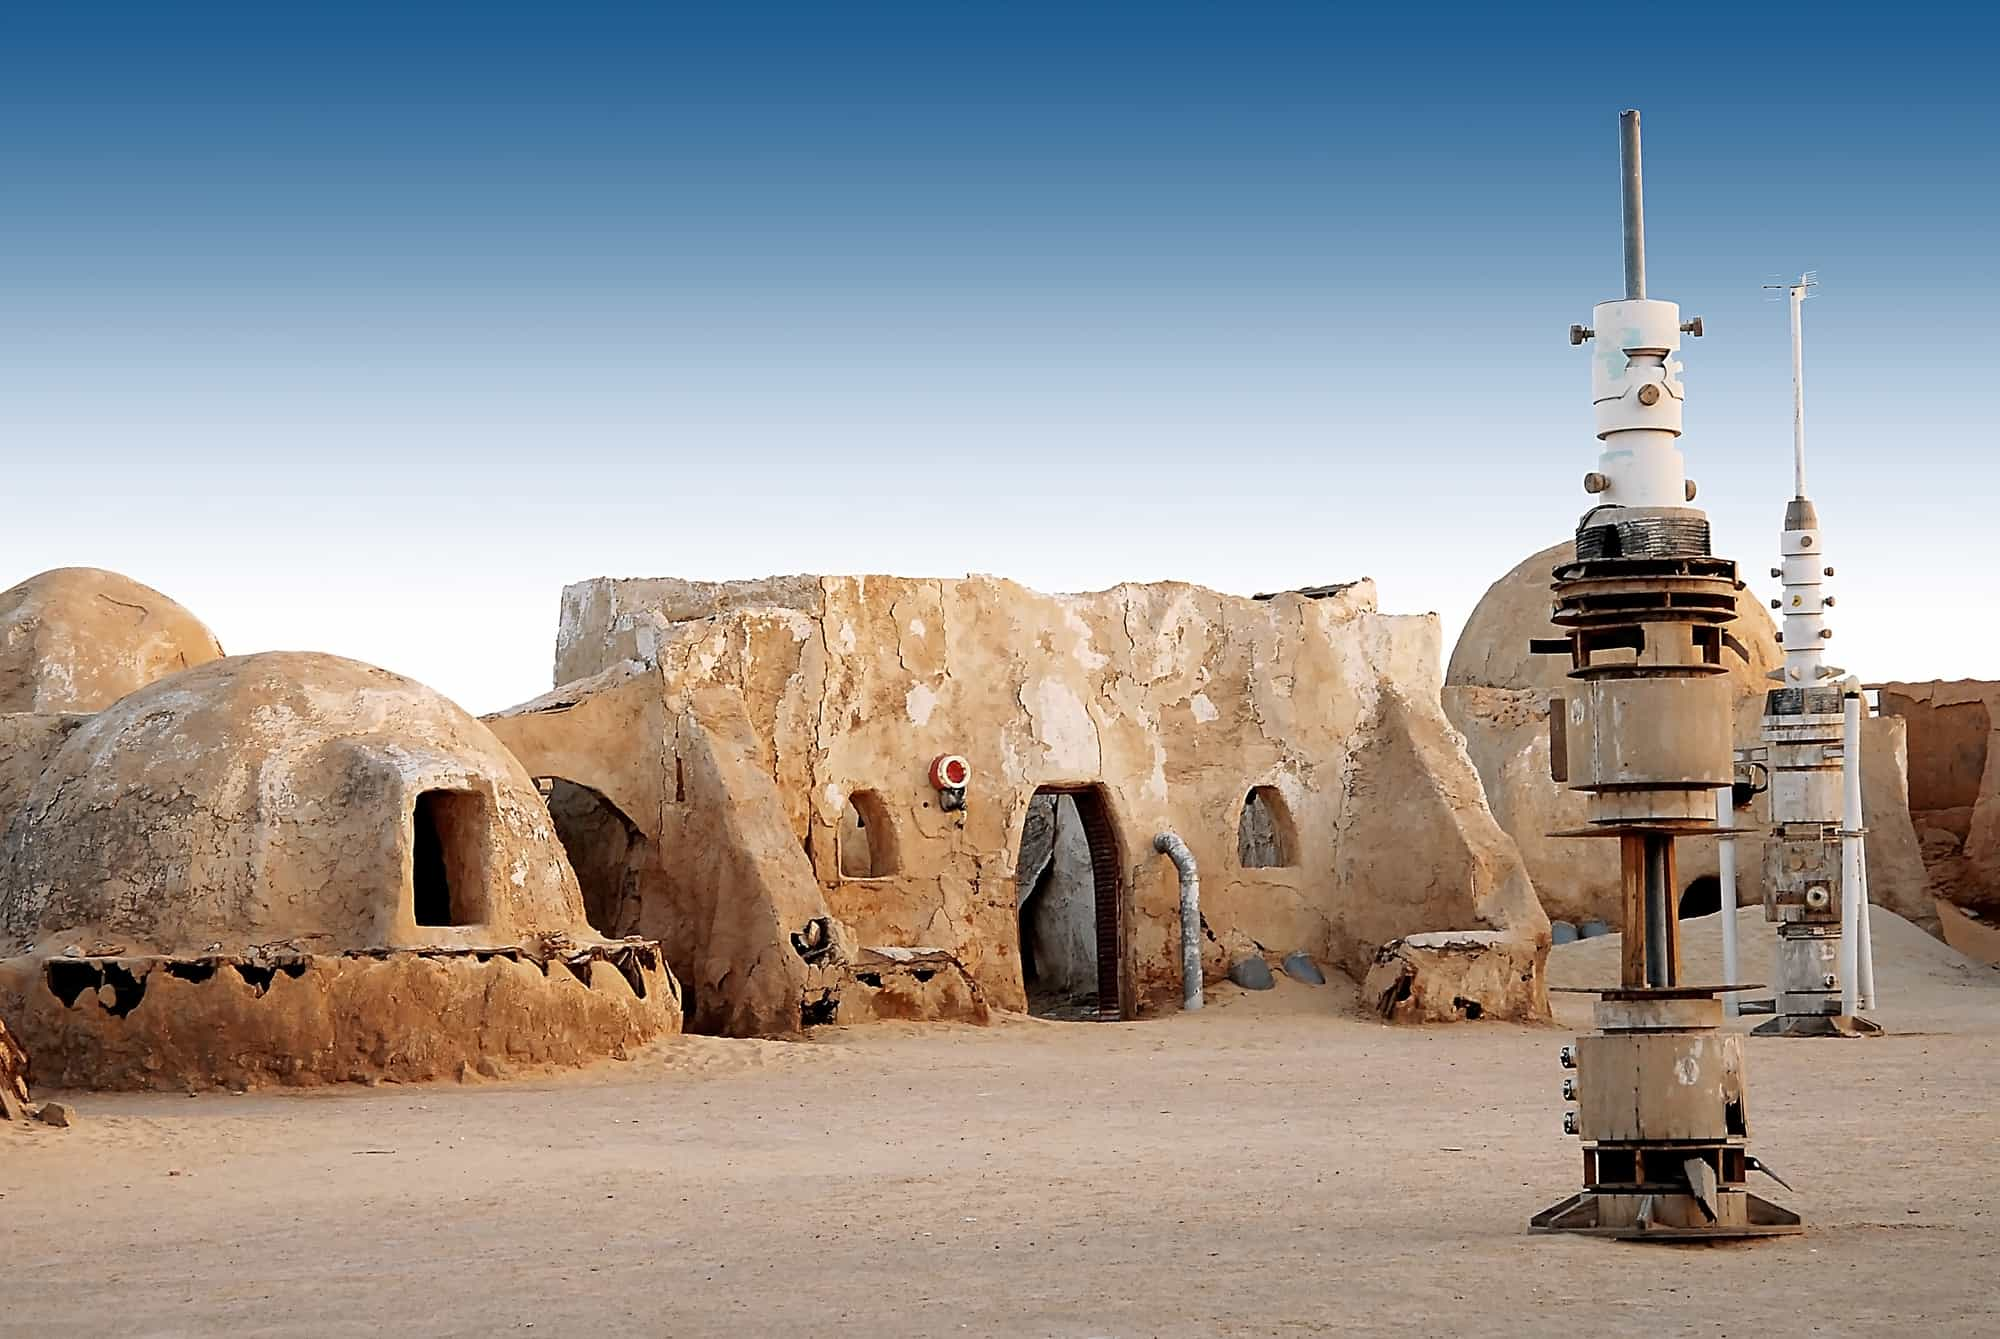 star wars set in tatooine